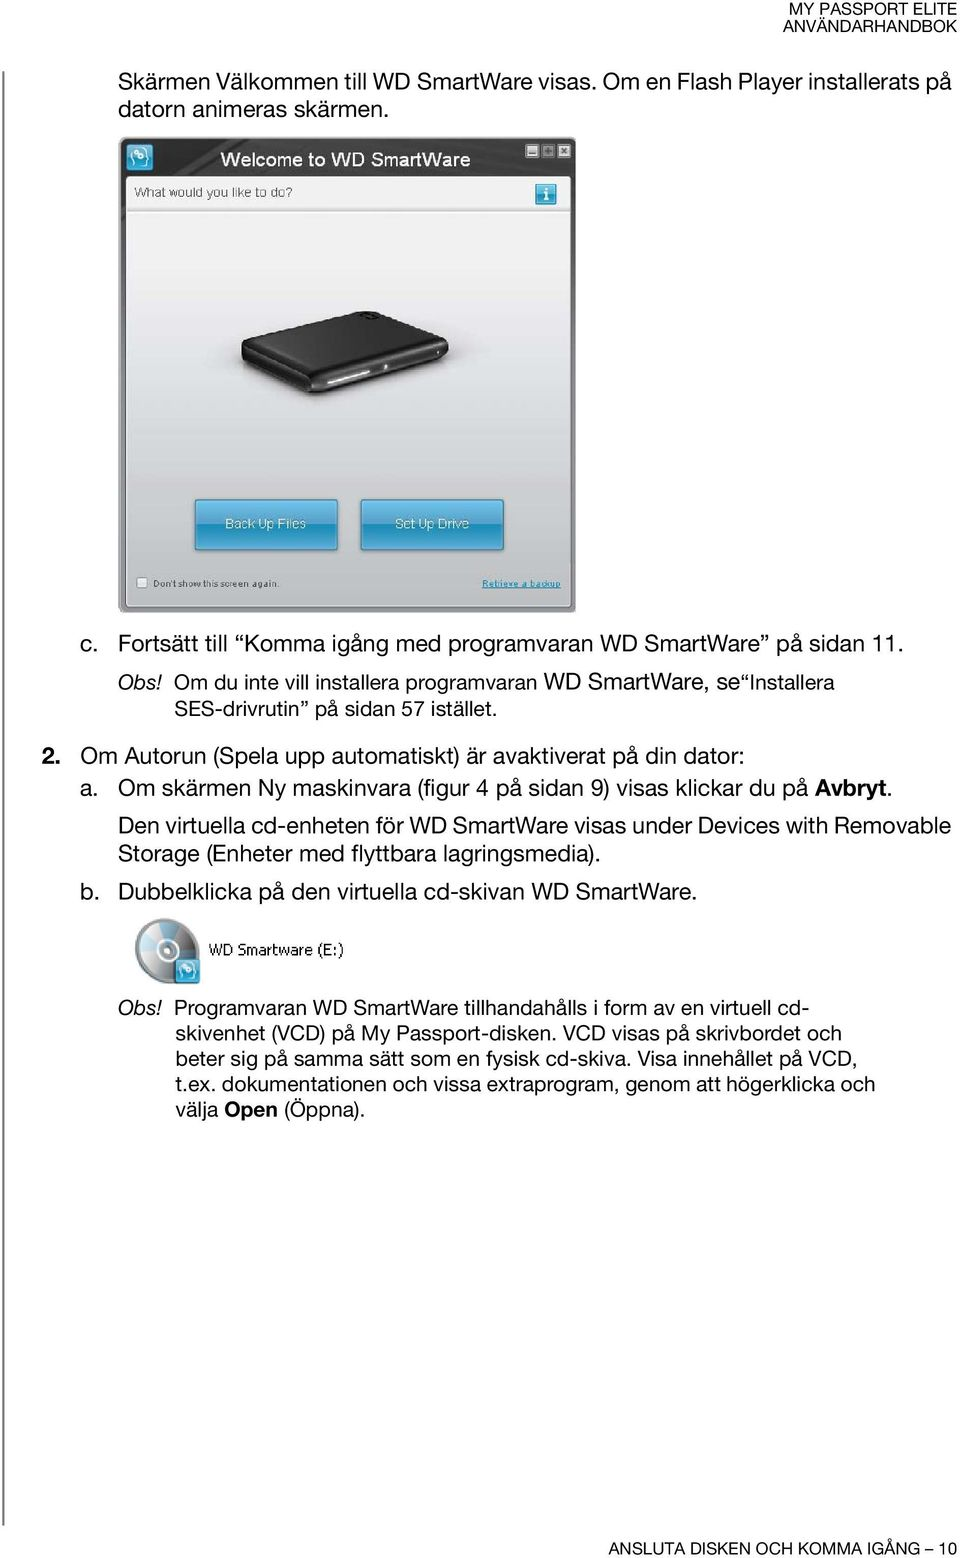 Om skärmen Ny maskinvara (figur 4 på sidan 9) visas klickar du på Avbryt. Den virtuella cd-enheten för WD SmartWare visas under Devices with Removable Storage (Enheter med flyttbara lagringsmedia). b.